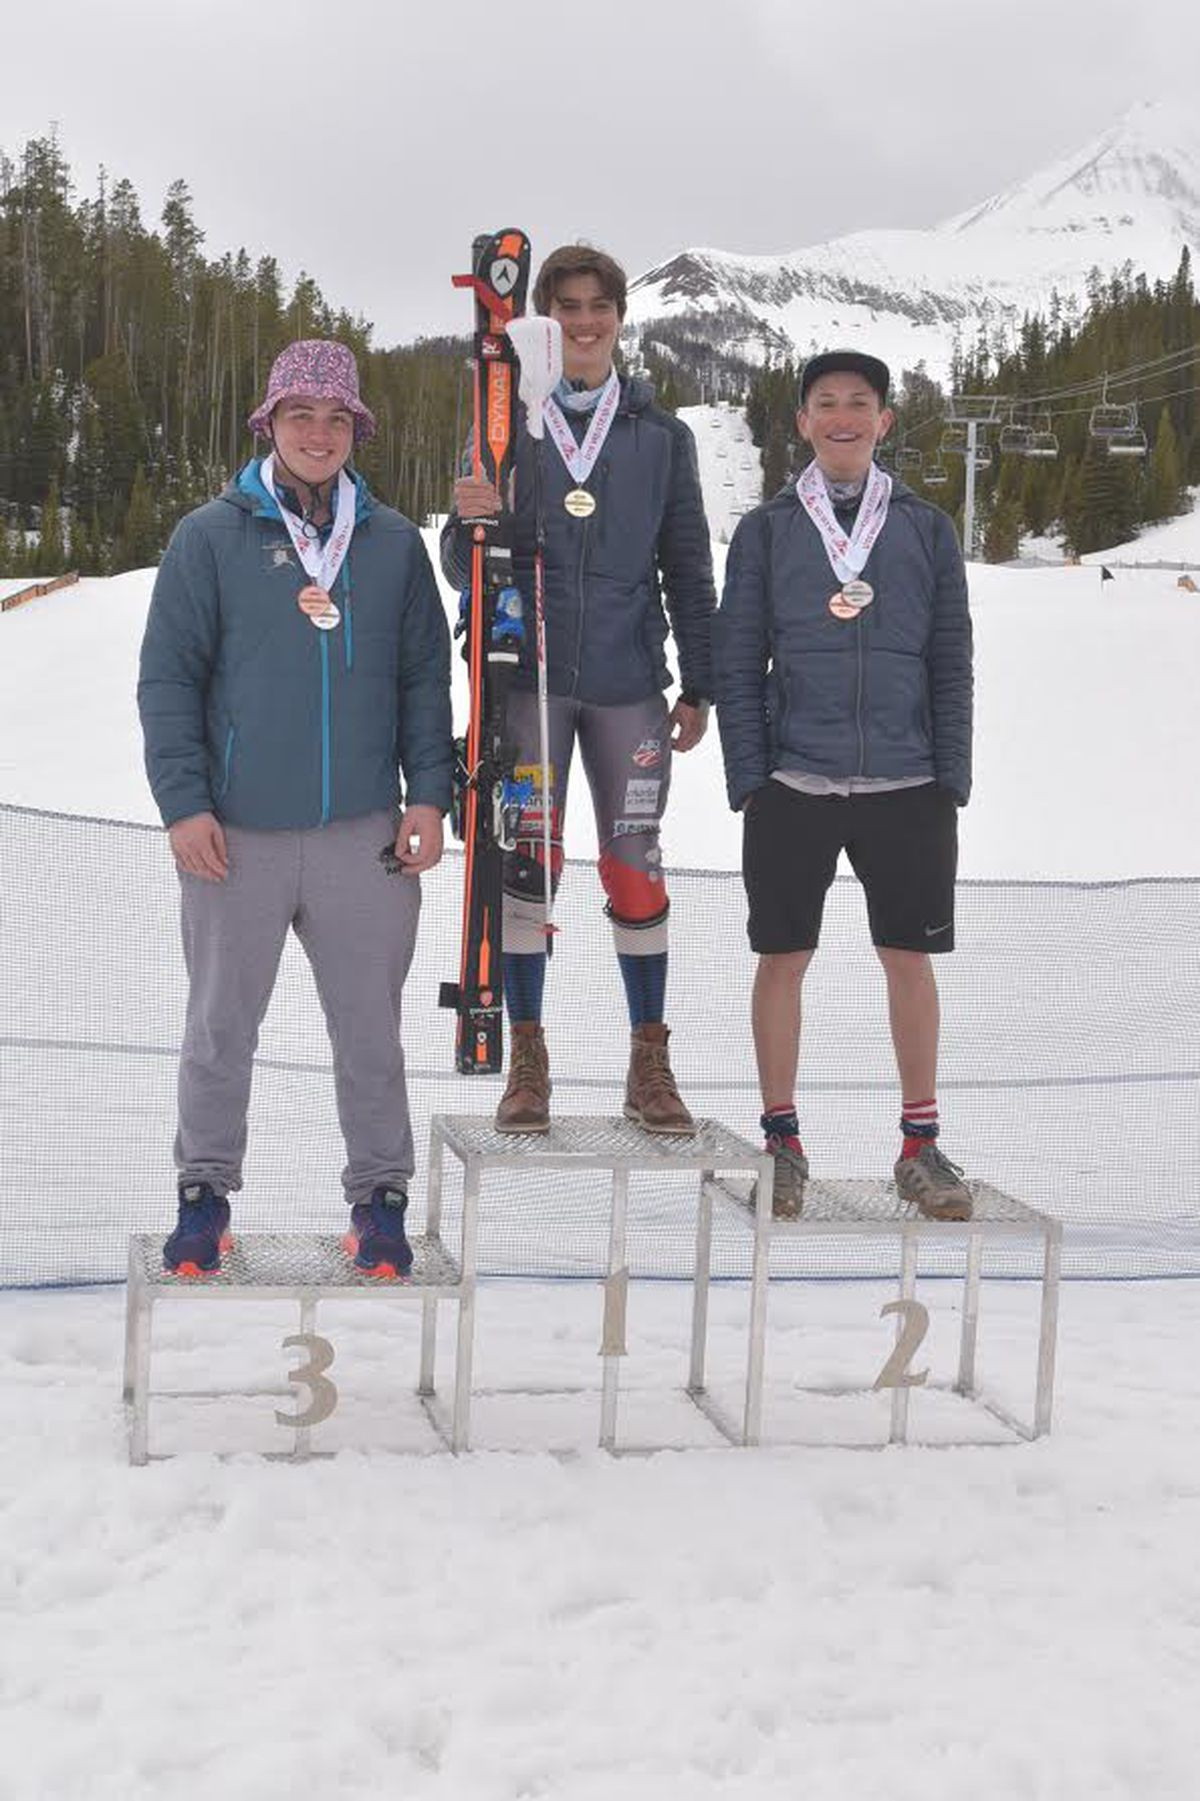 Anchorage skier Connor Lane, left, earned third place in the overall standings Sunday at the Western Regional Ski Championships in Big Sky, Montana. (Courtesy Alyeska Ski Club).